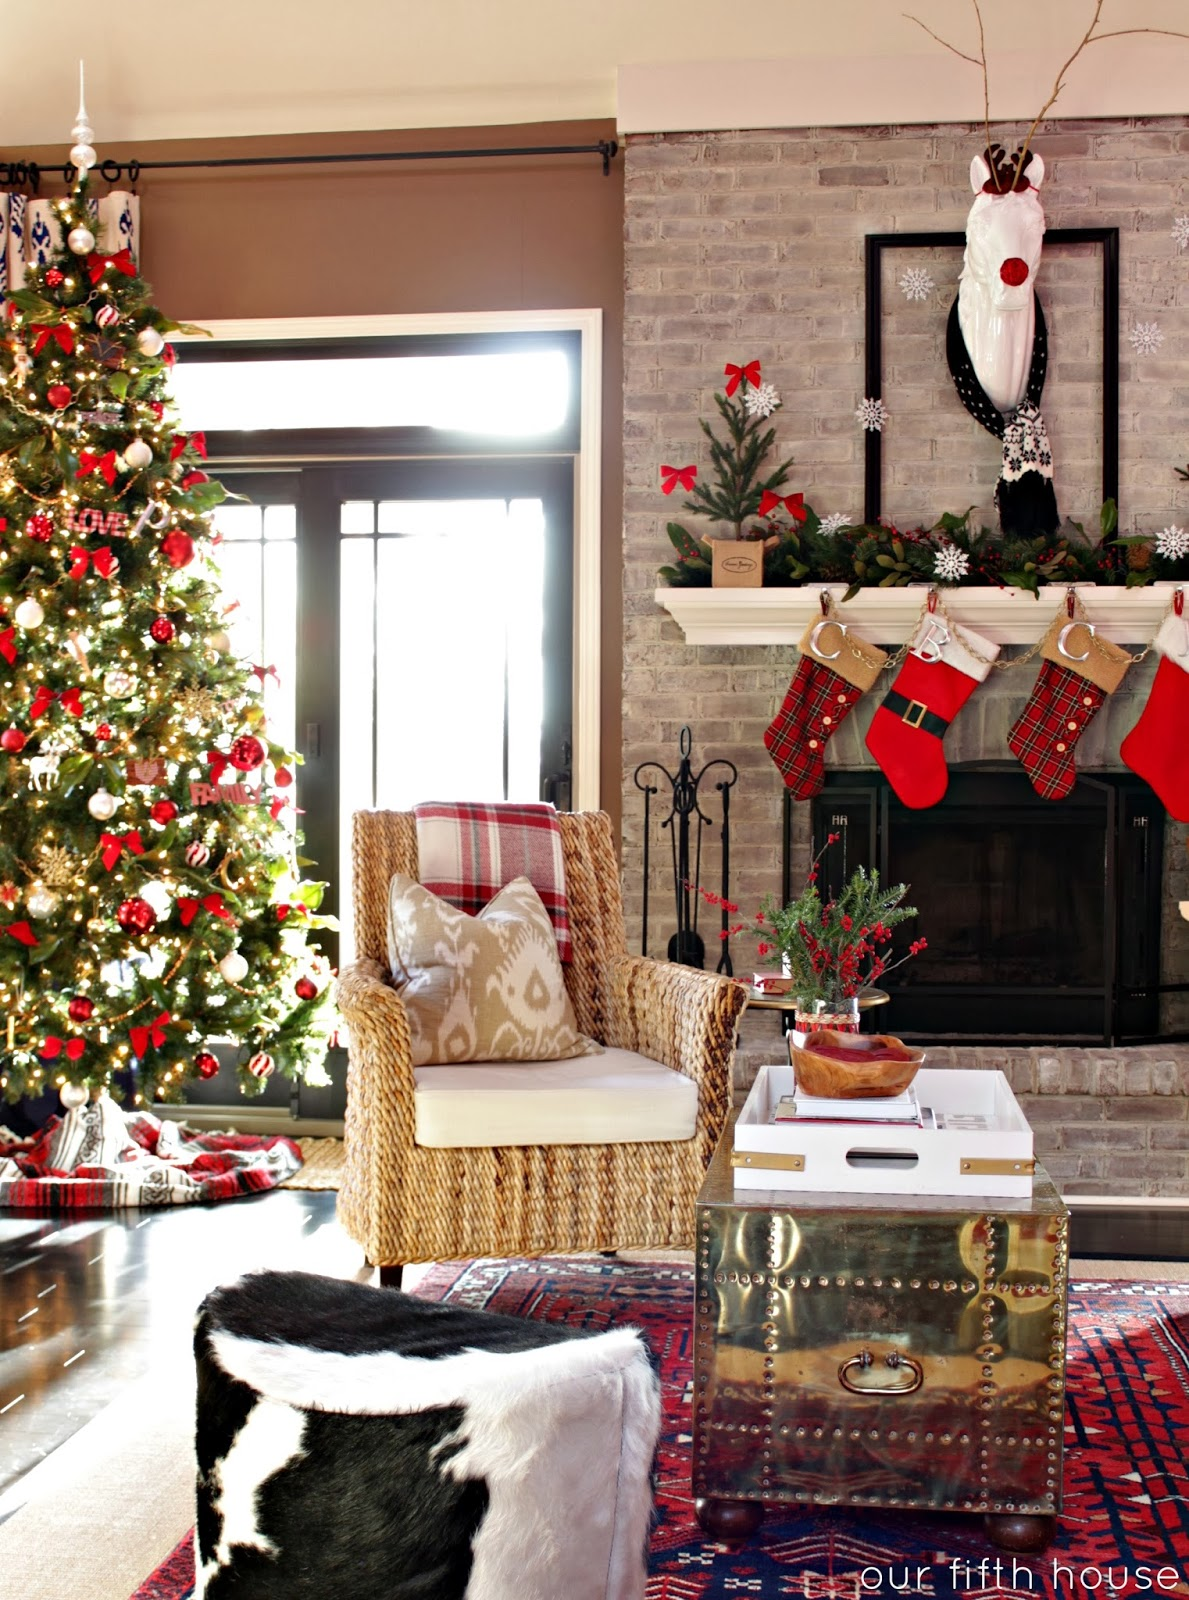 Our christmas home our fifth house - Living room decorated for christmas ...